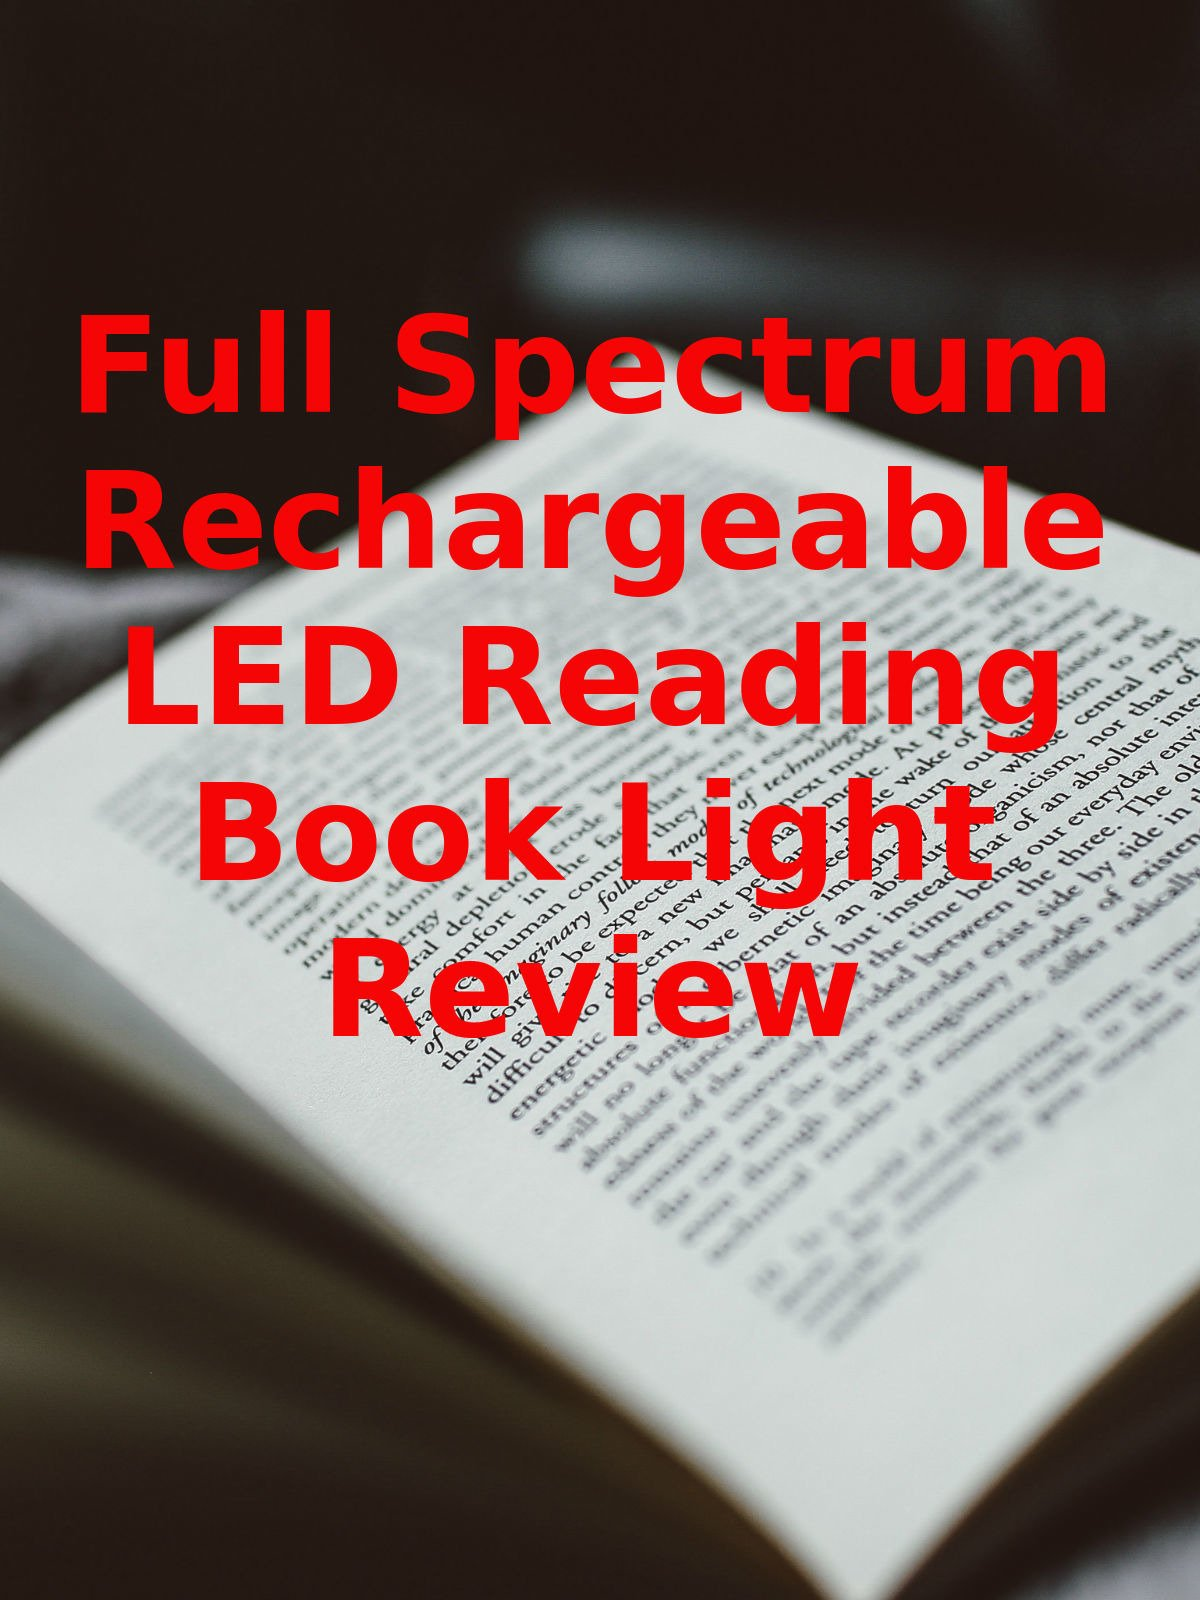 Review: Full Spectrum Rechargeable LED Reading Book Light Review